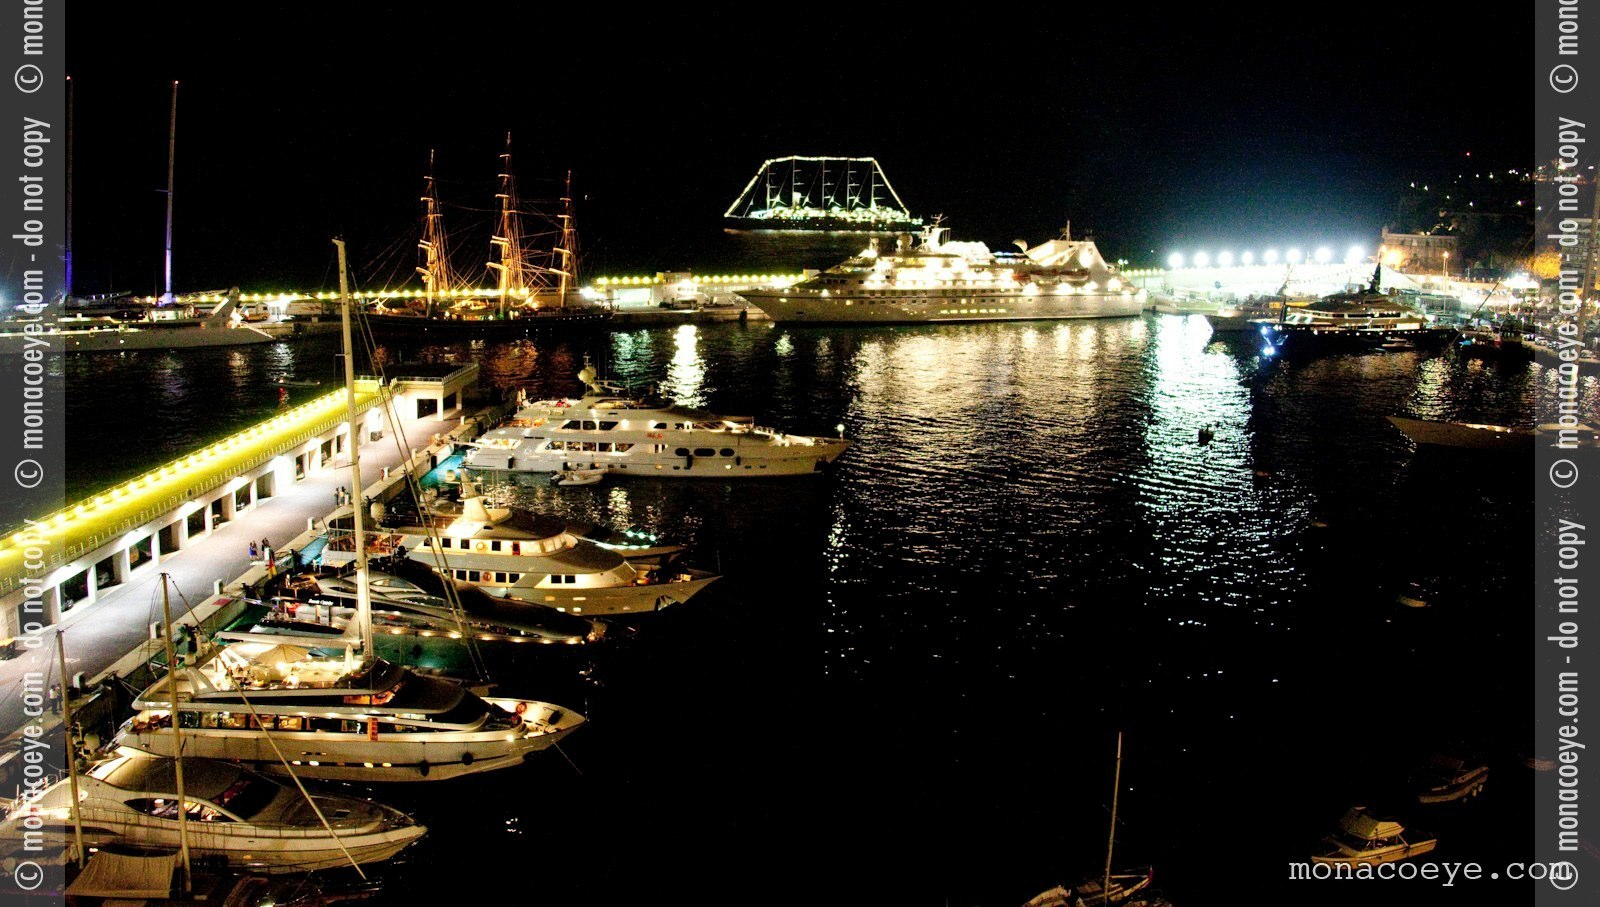 2009 Monaco Grand Prix - Port at Night